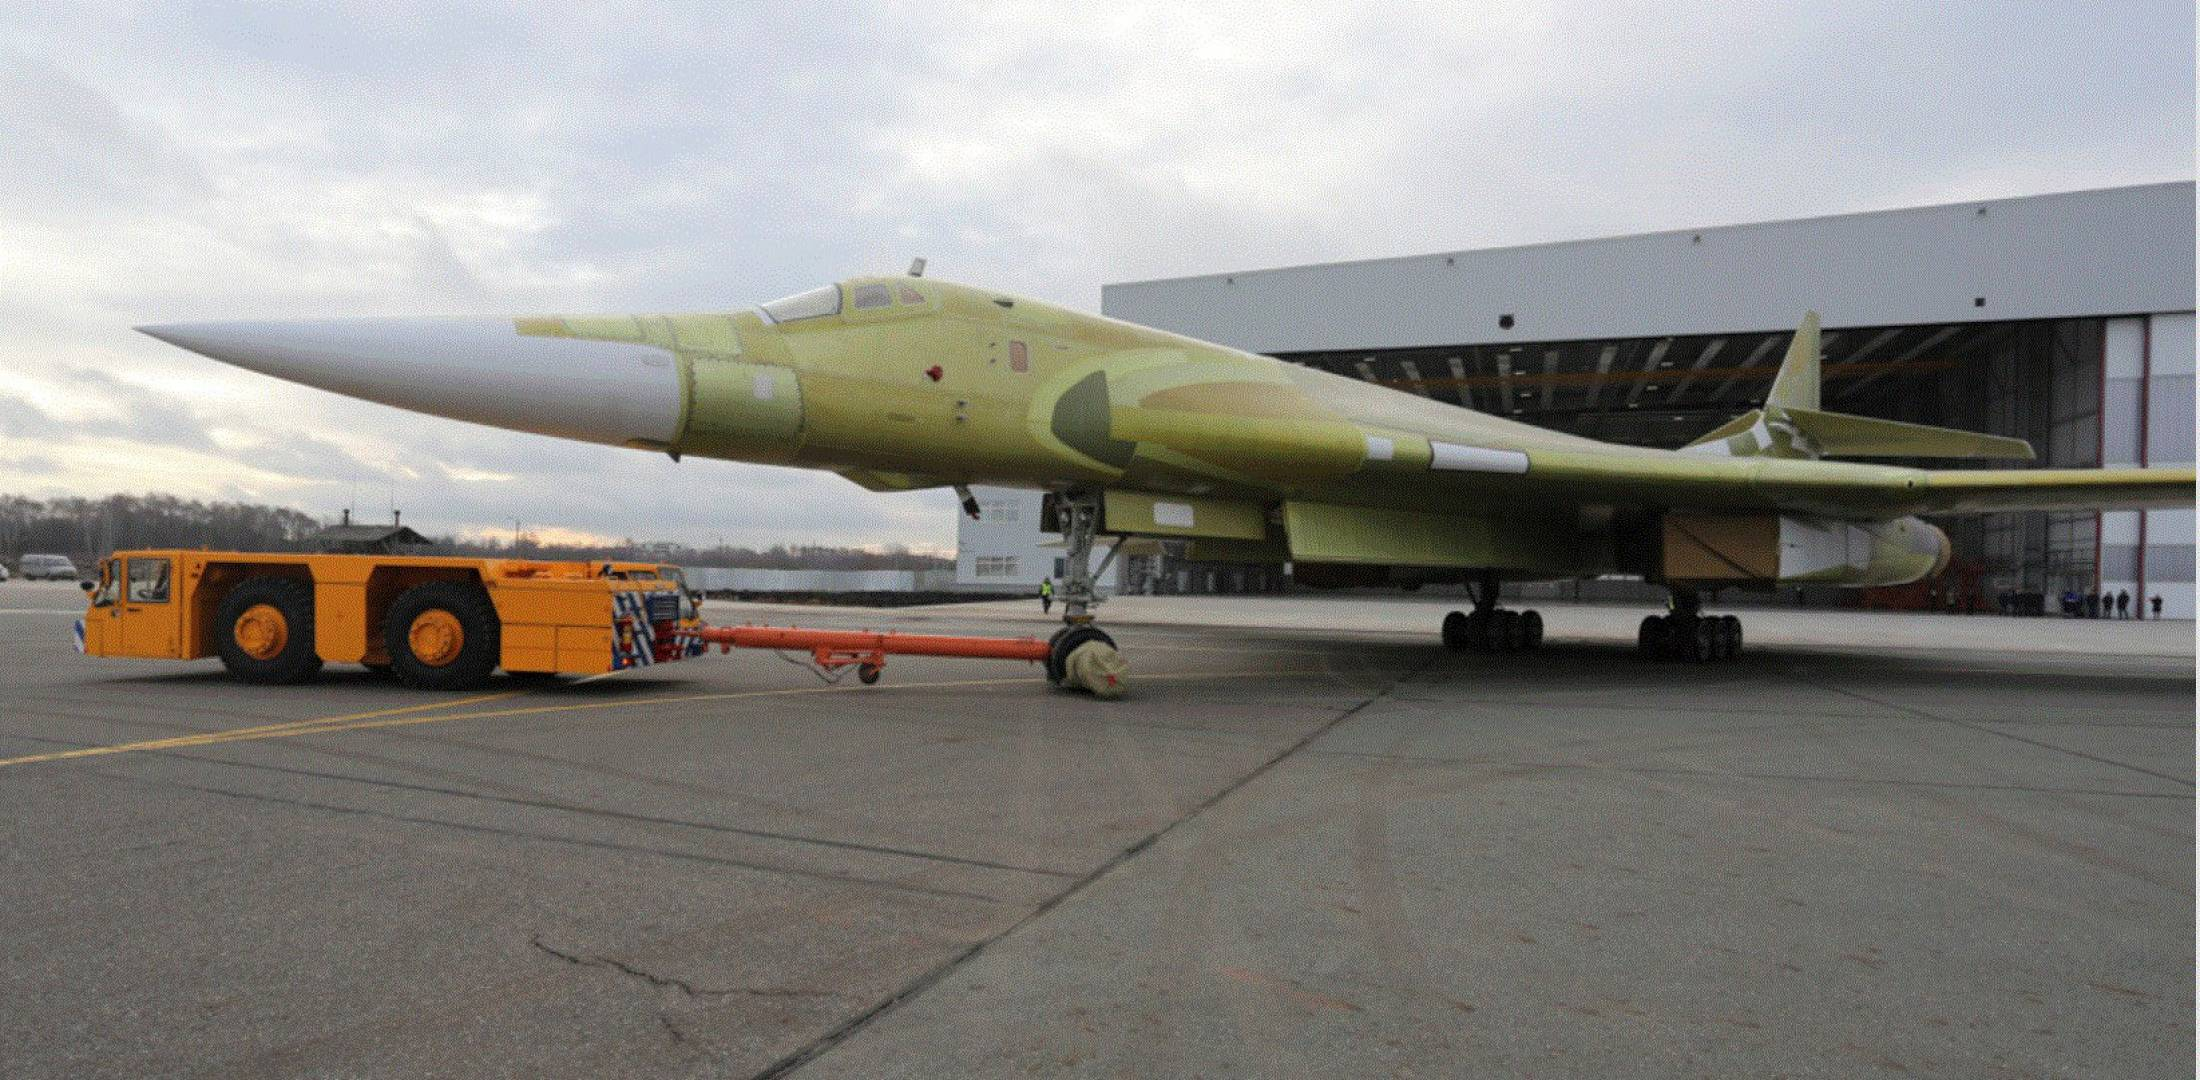 VKS of Russia received from the industry the third serial IL-76MD-90A 77